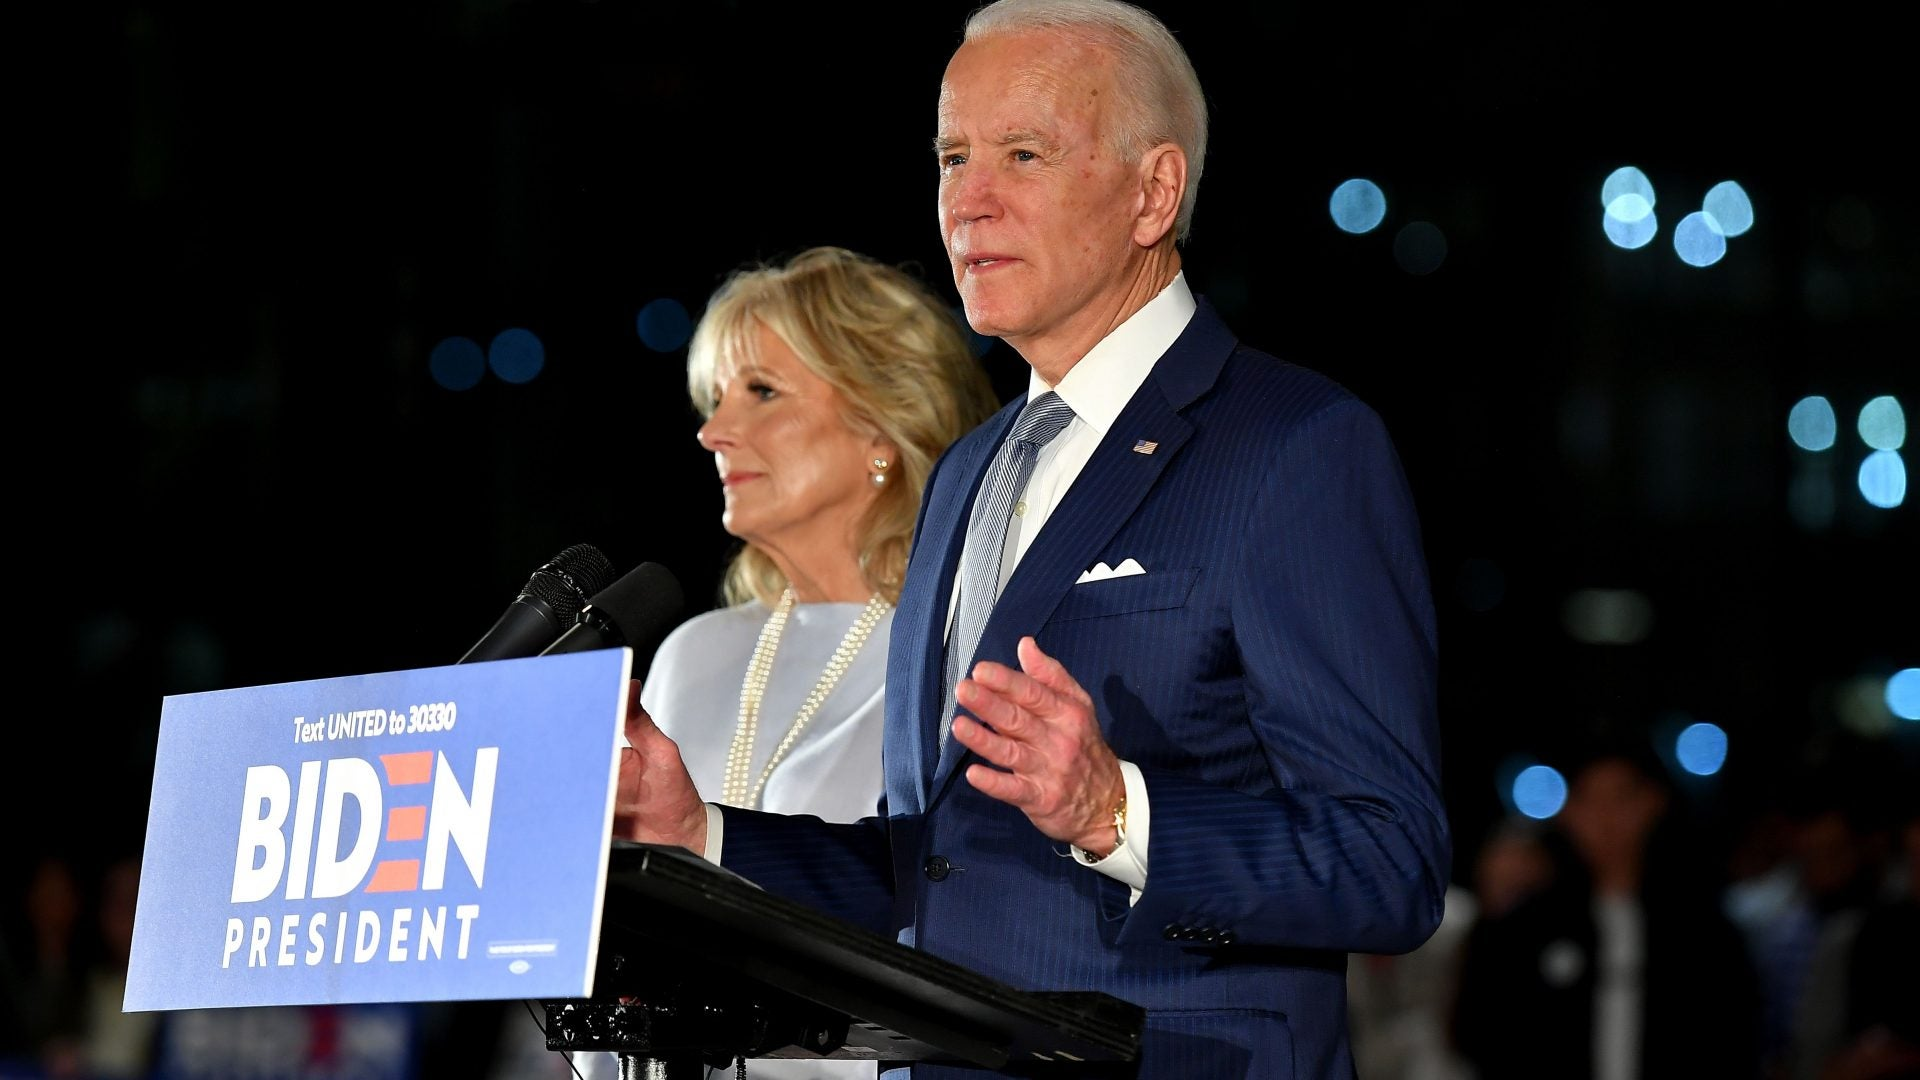 Biden Secures Big Wins In March 10 Primaries